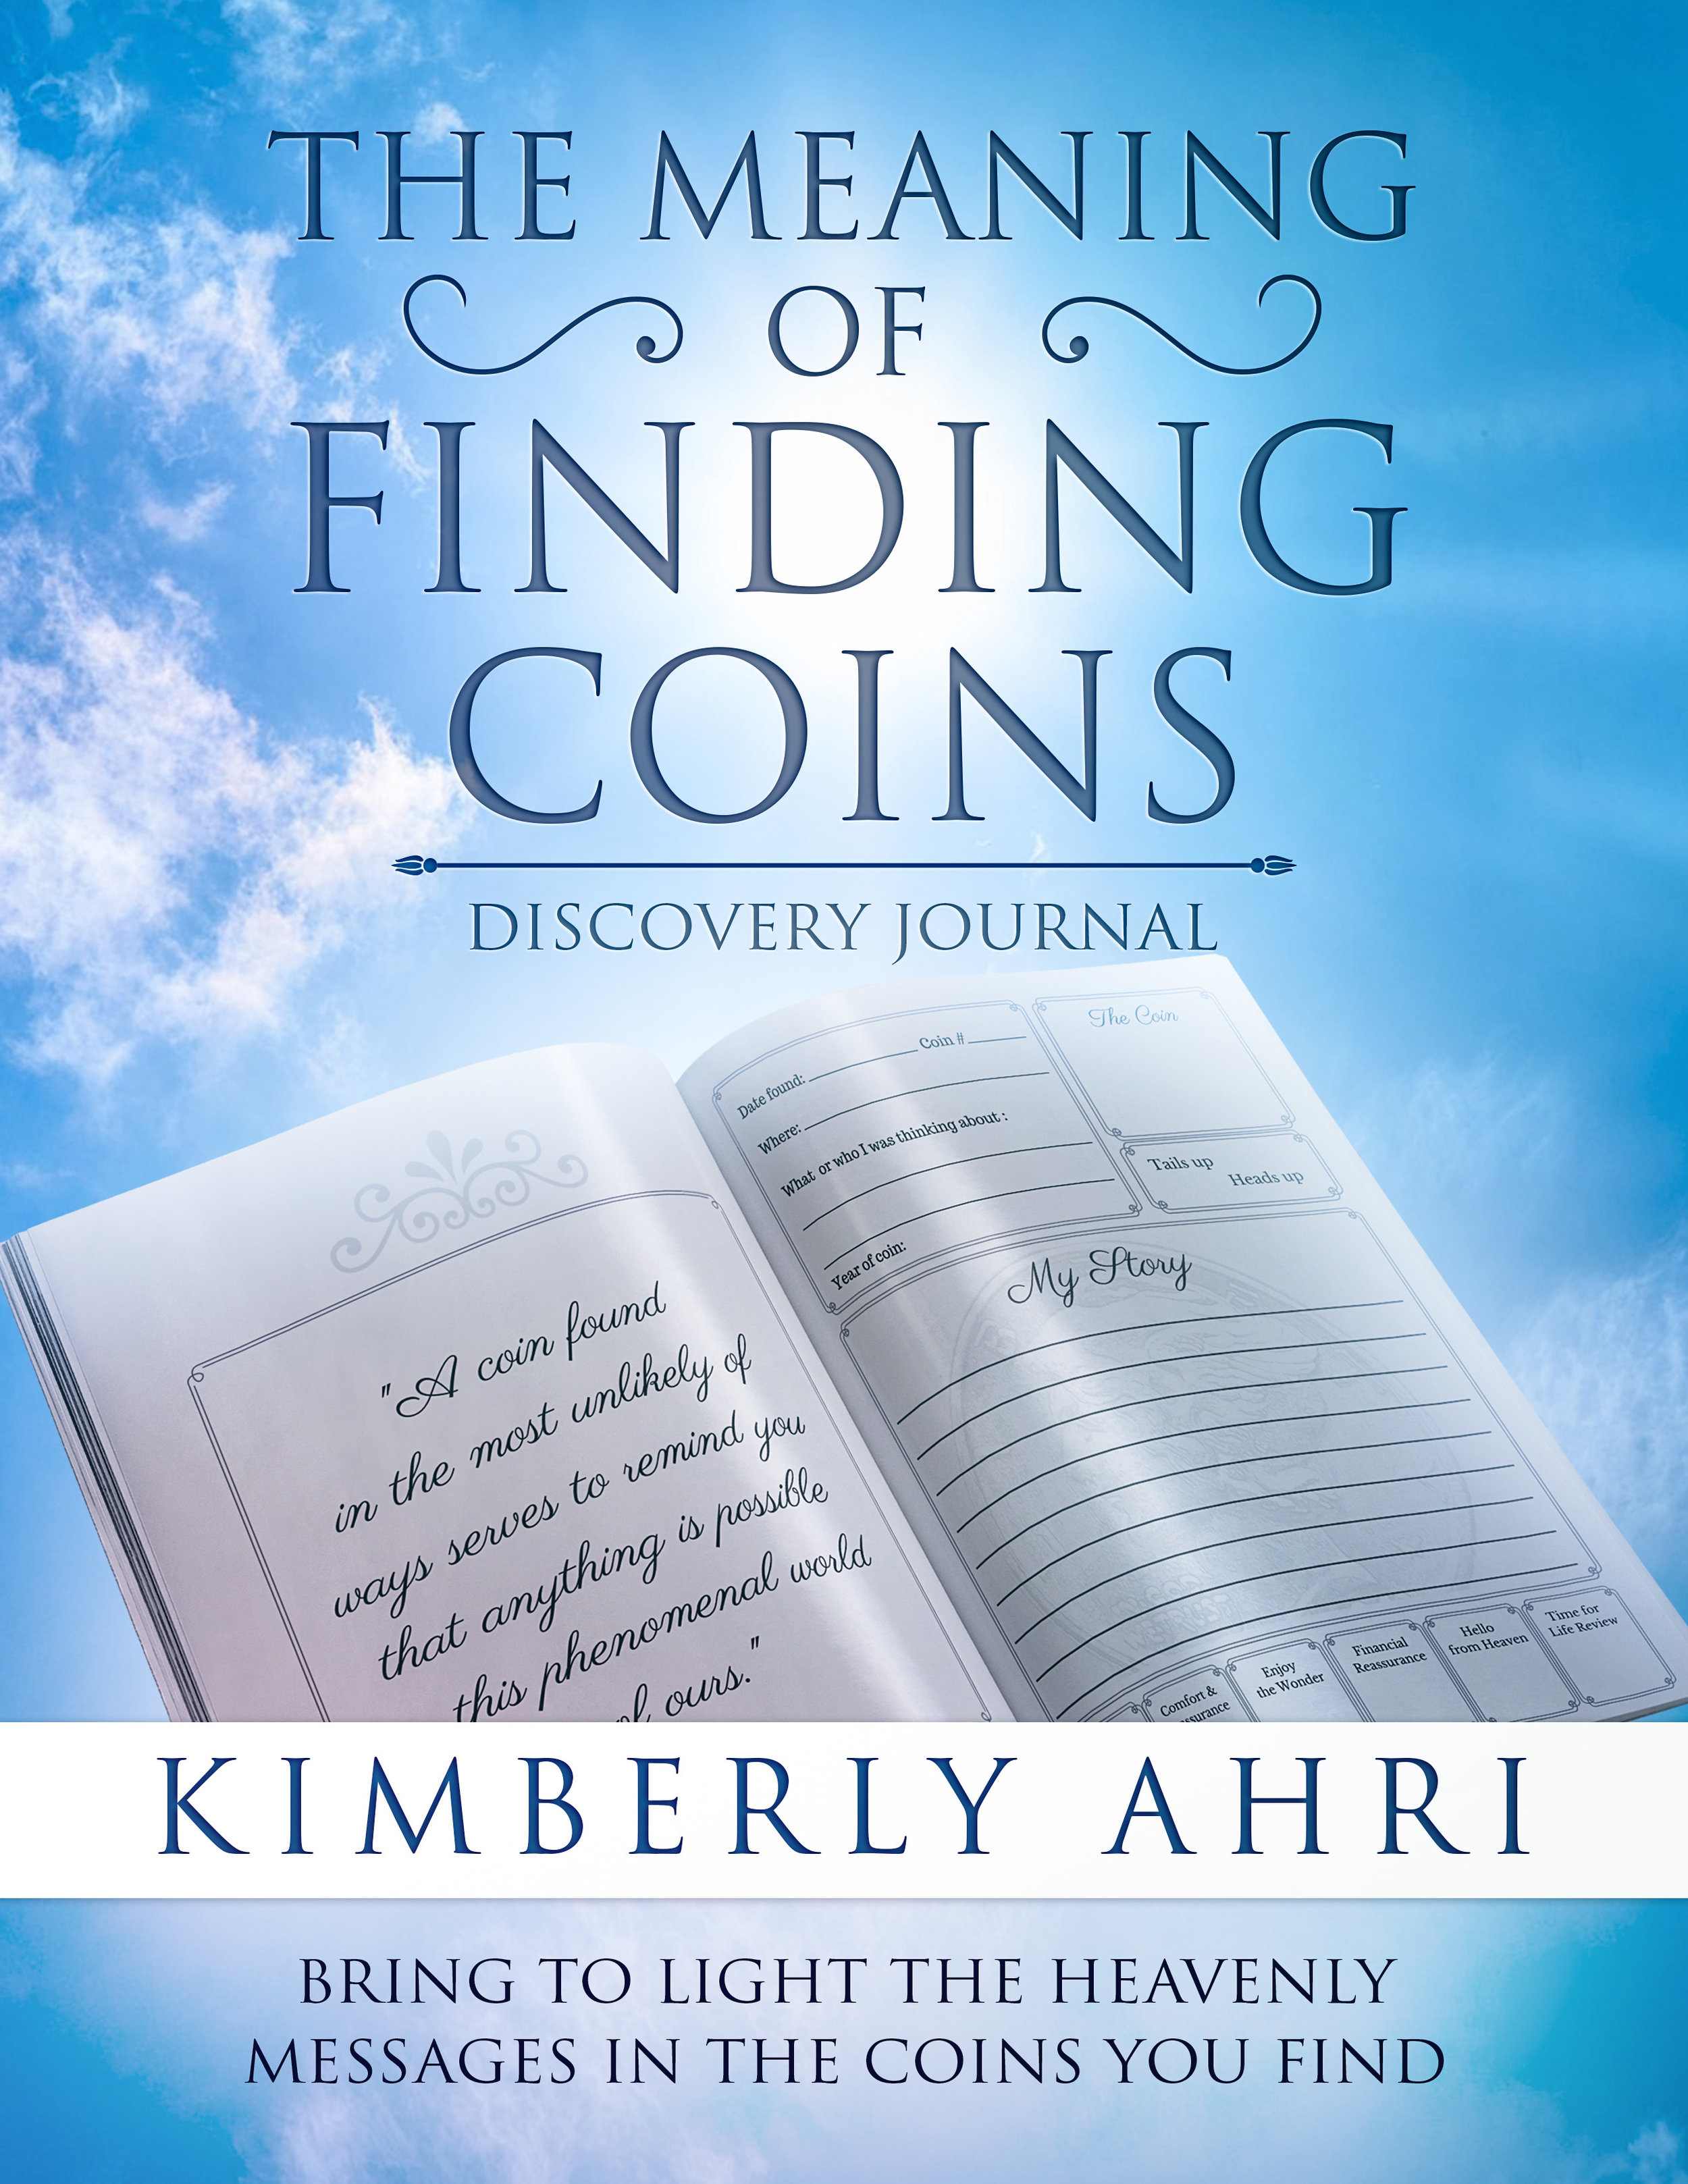 The Meaning of Finding Coins Discovery Journal